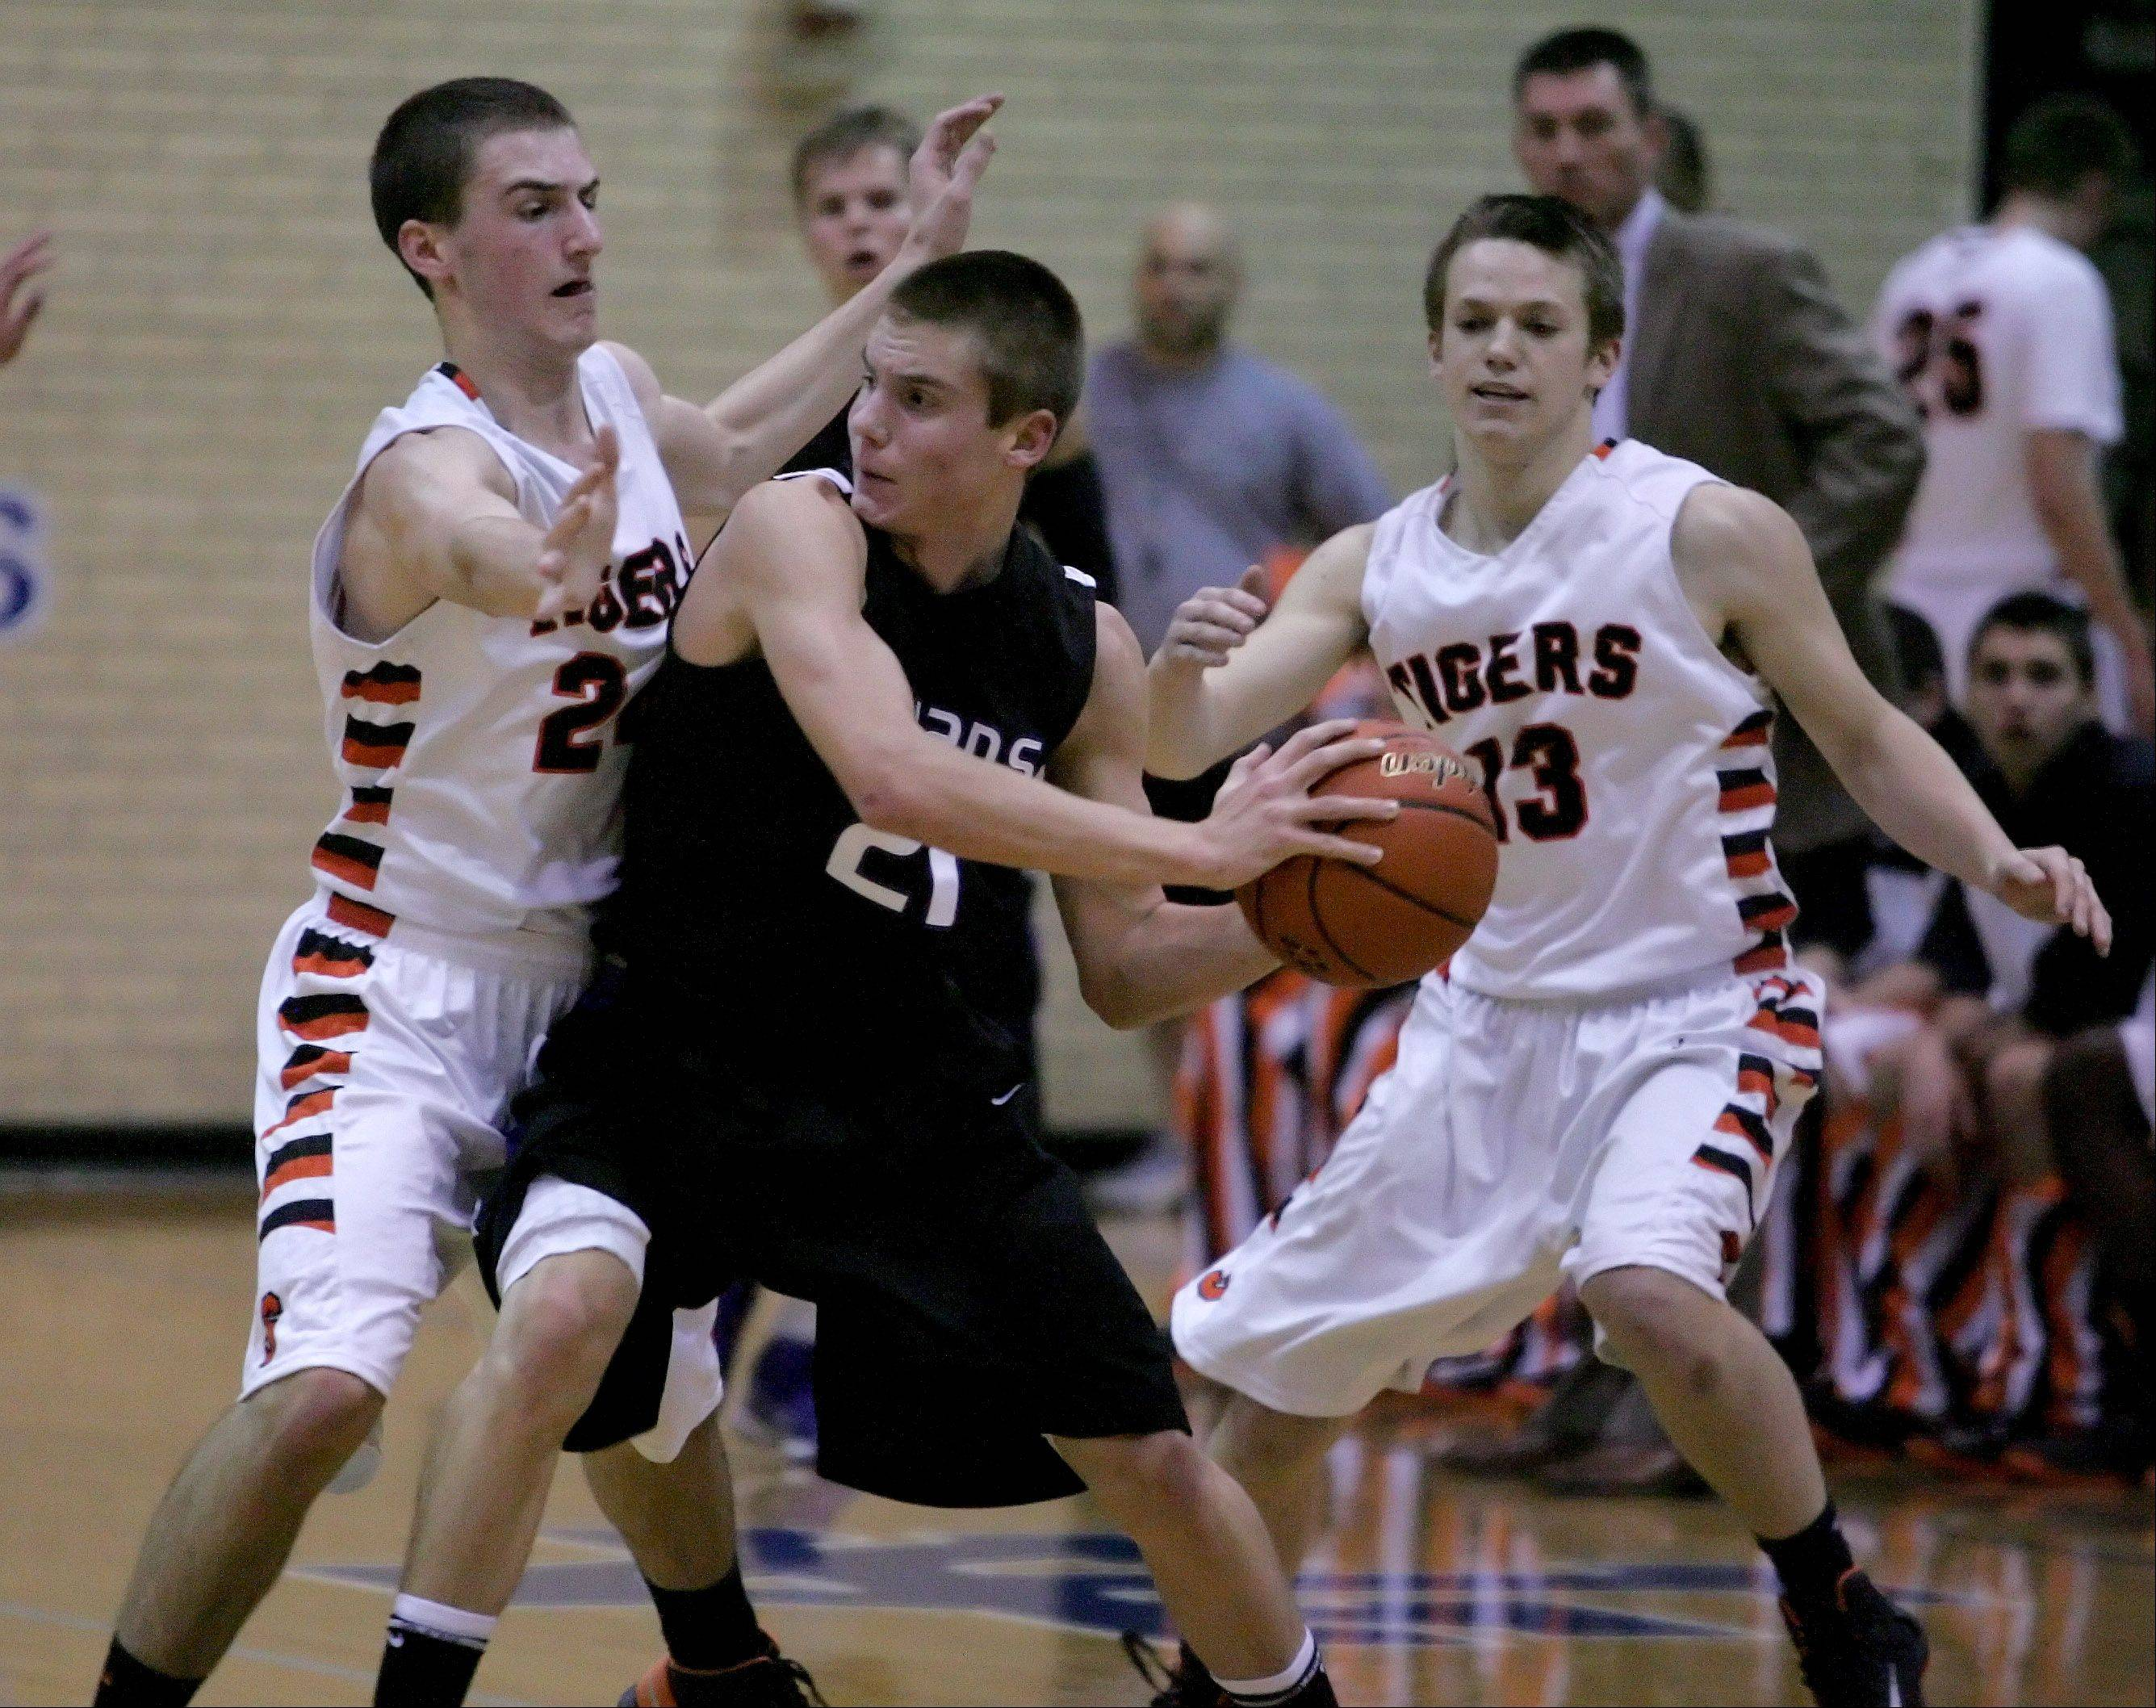 David Henson of Downers Grove North, looks for room to pass as Matt Kienzle, left and Adam Rogers, right, of Wheaton Warrenville South, defend.